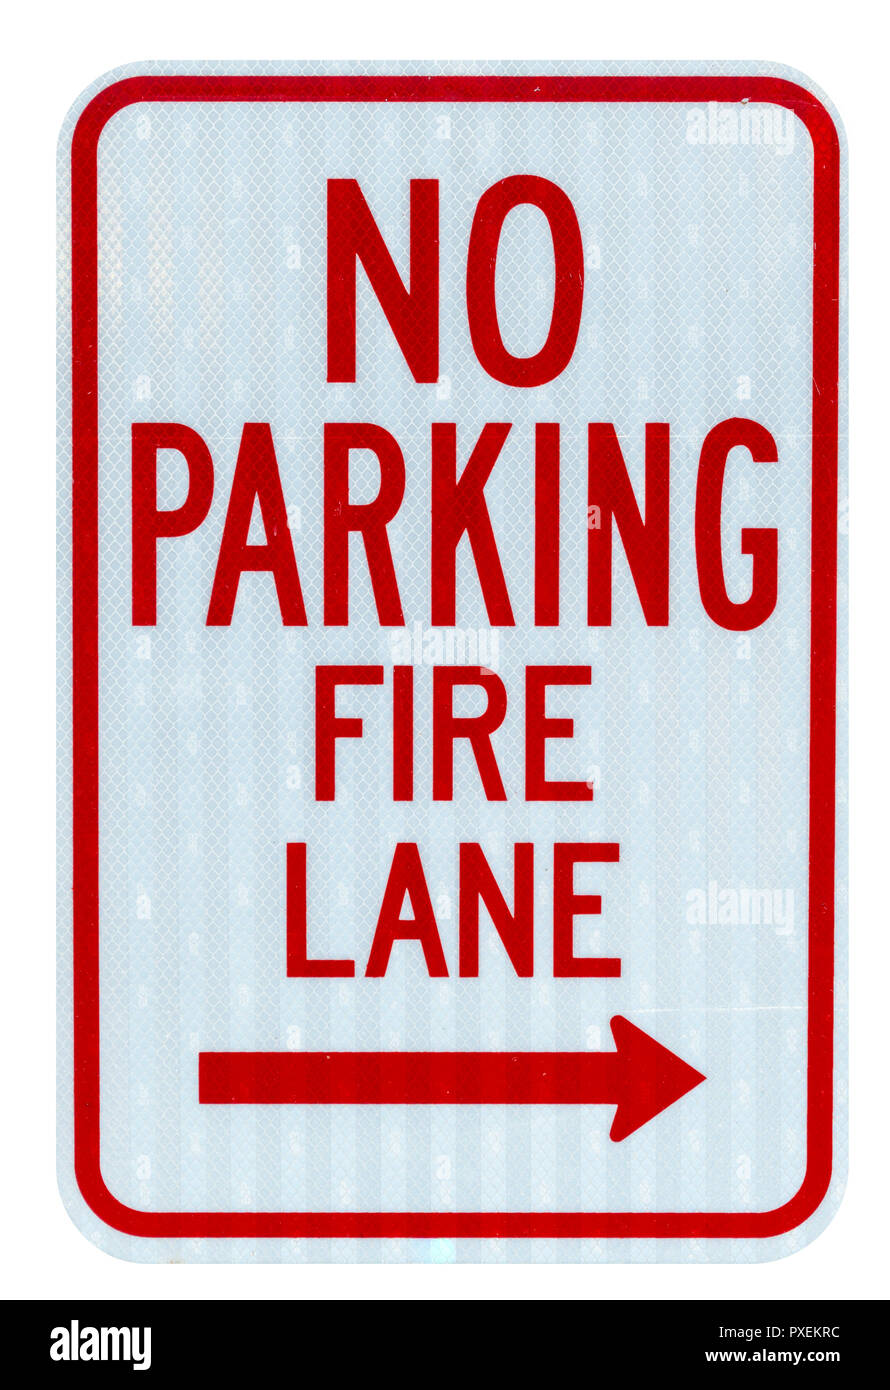 Isolated no parking fire lane sign on white background Stock Photo